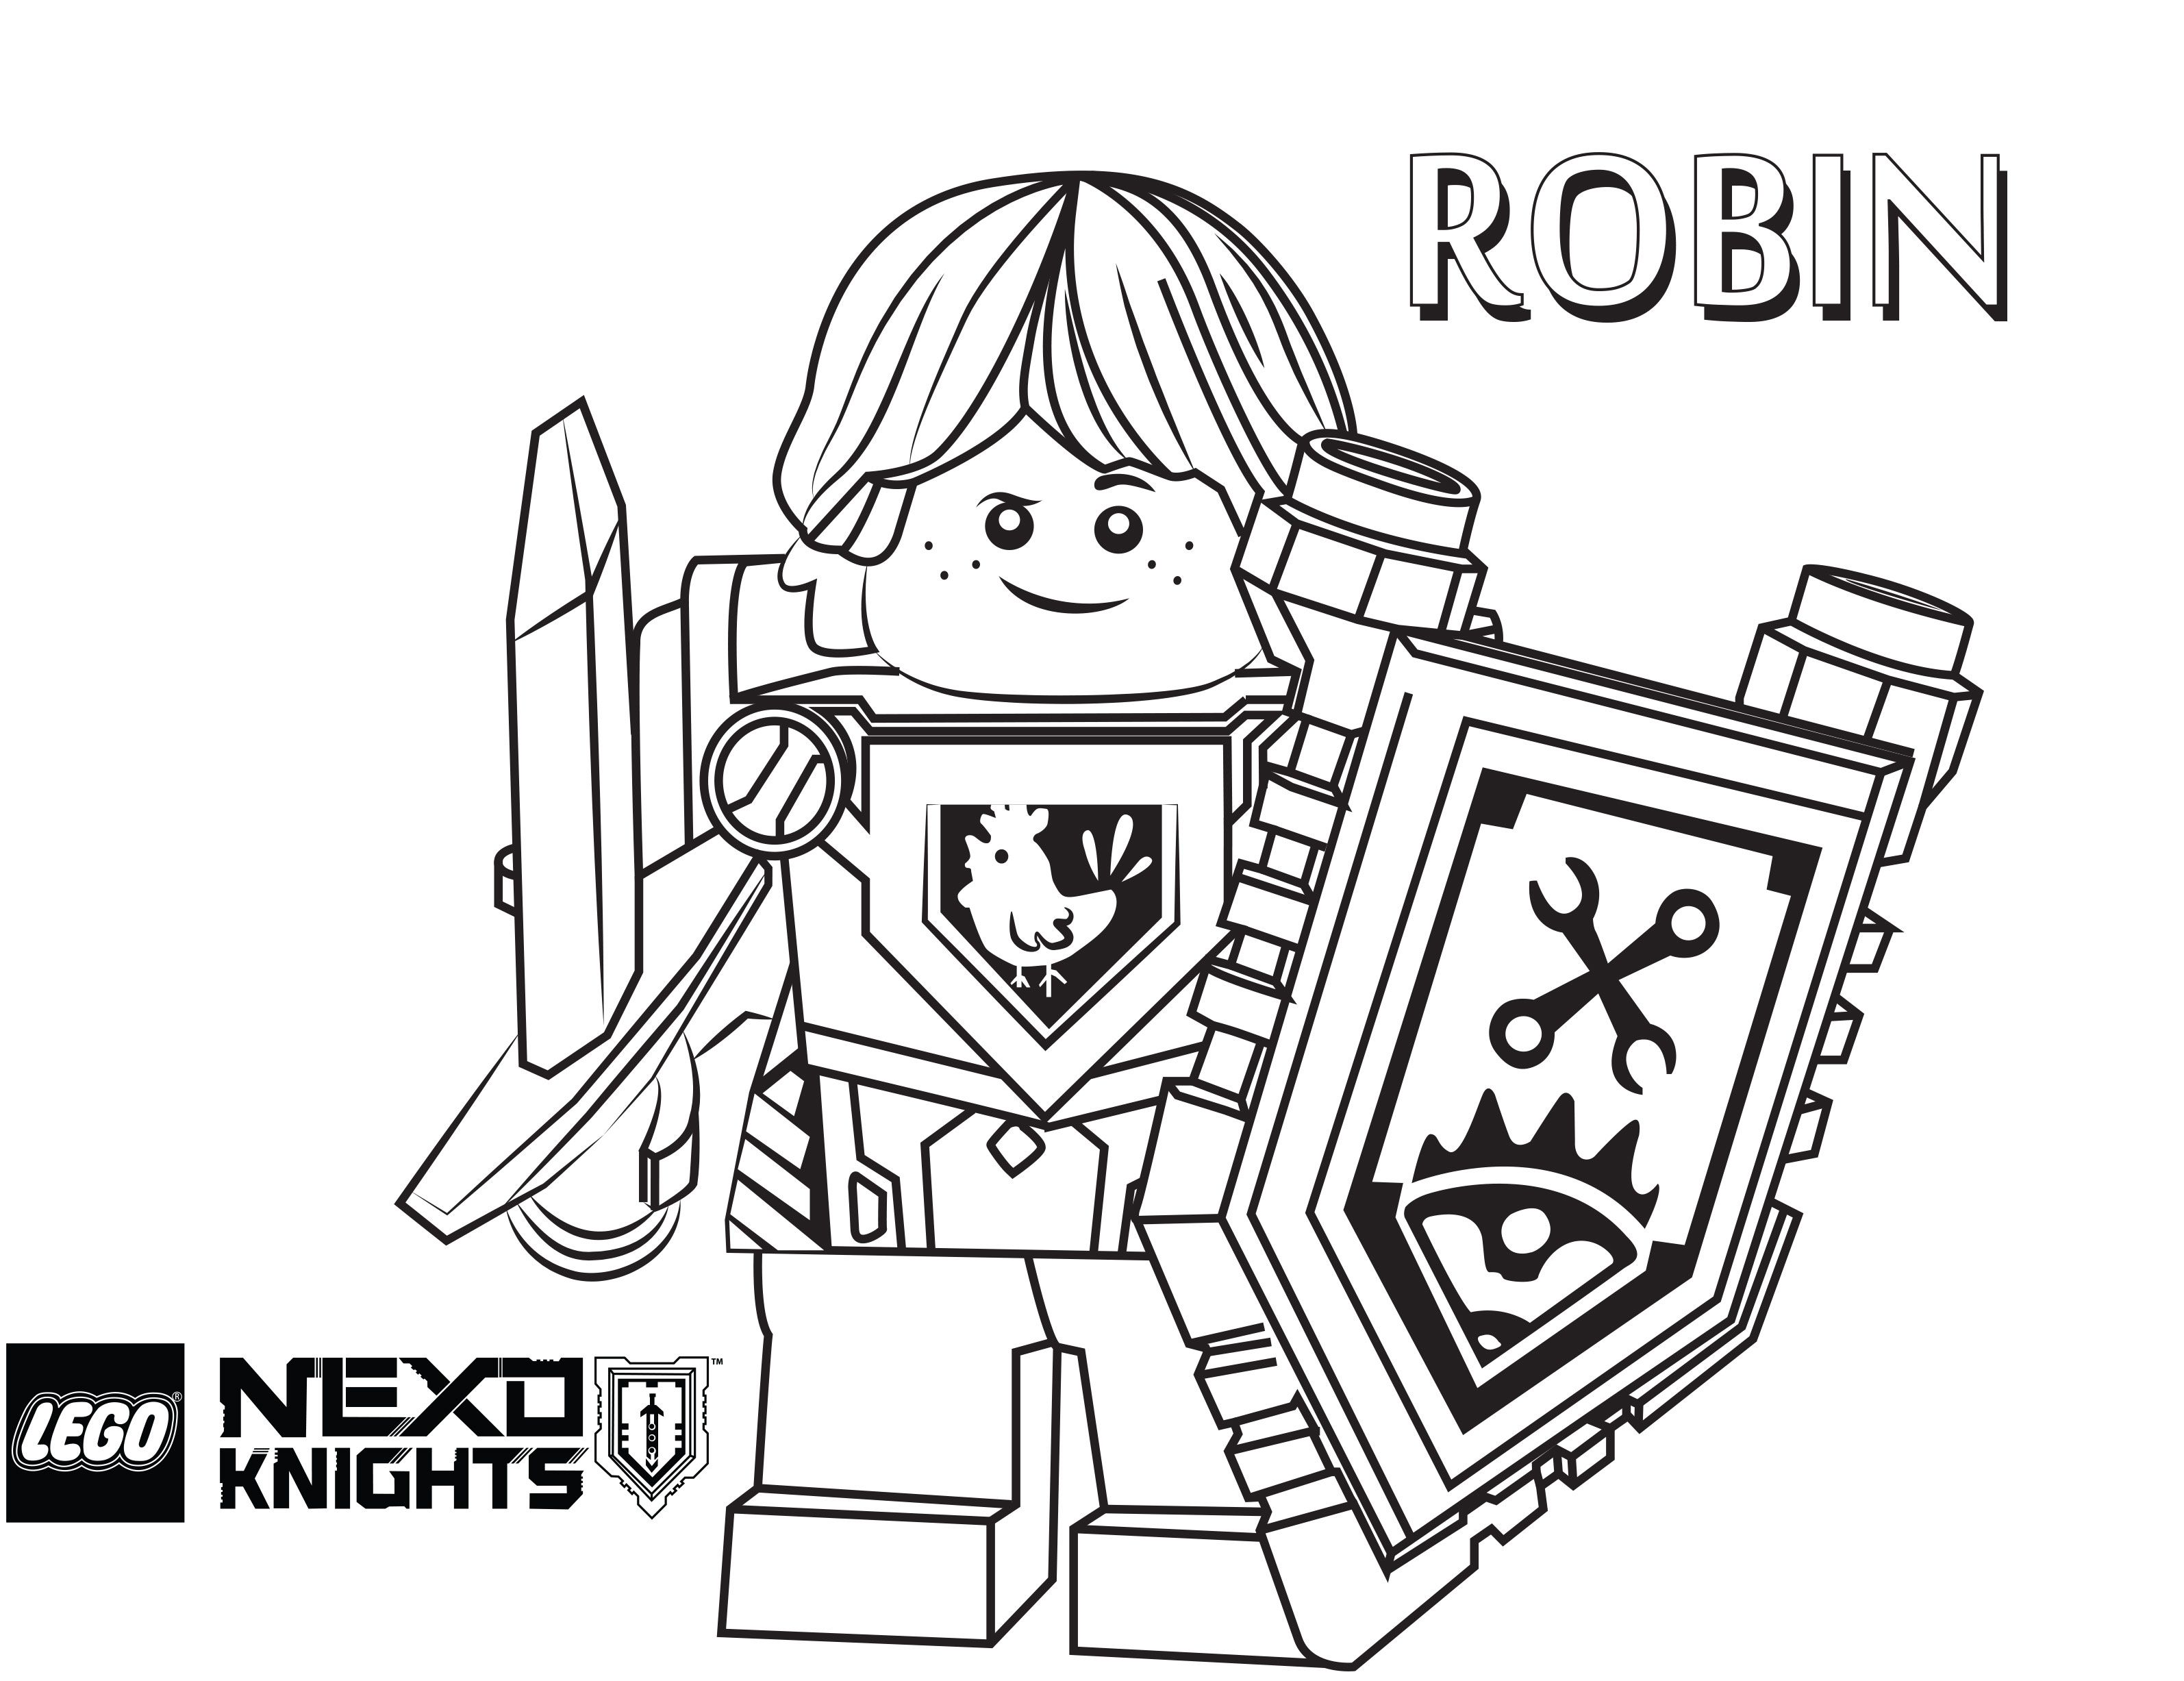 lego nexo knights coloring pages free printable lego nexo knights color sheets - Knight Coloring Pages